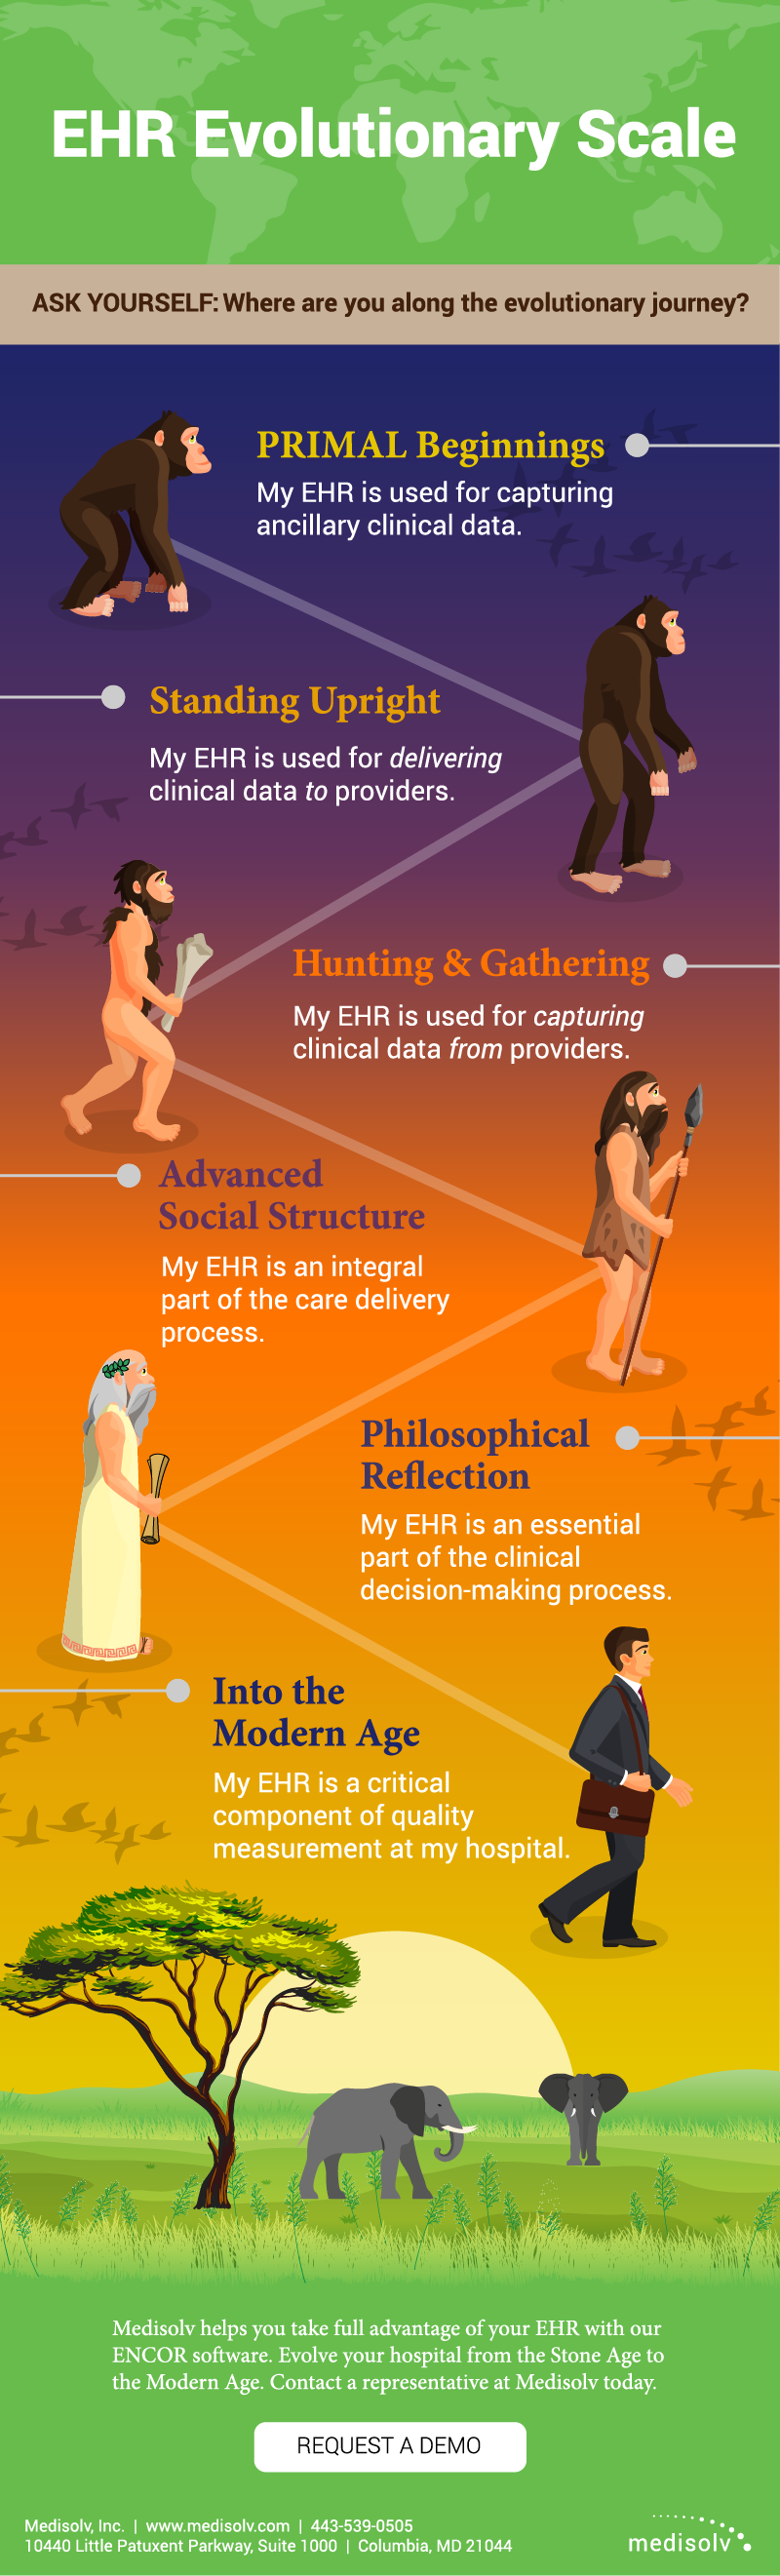 EHR-Evolutionary-Scale-final-01.png